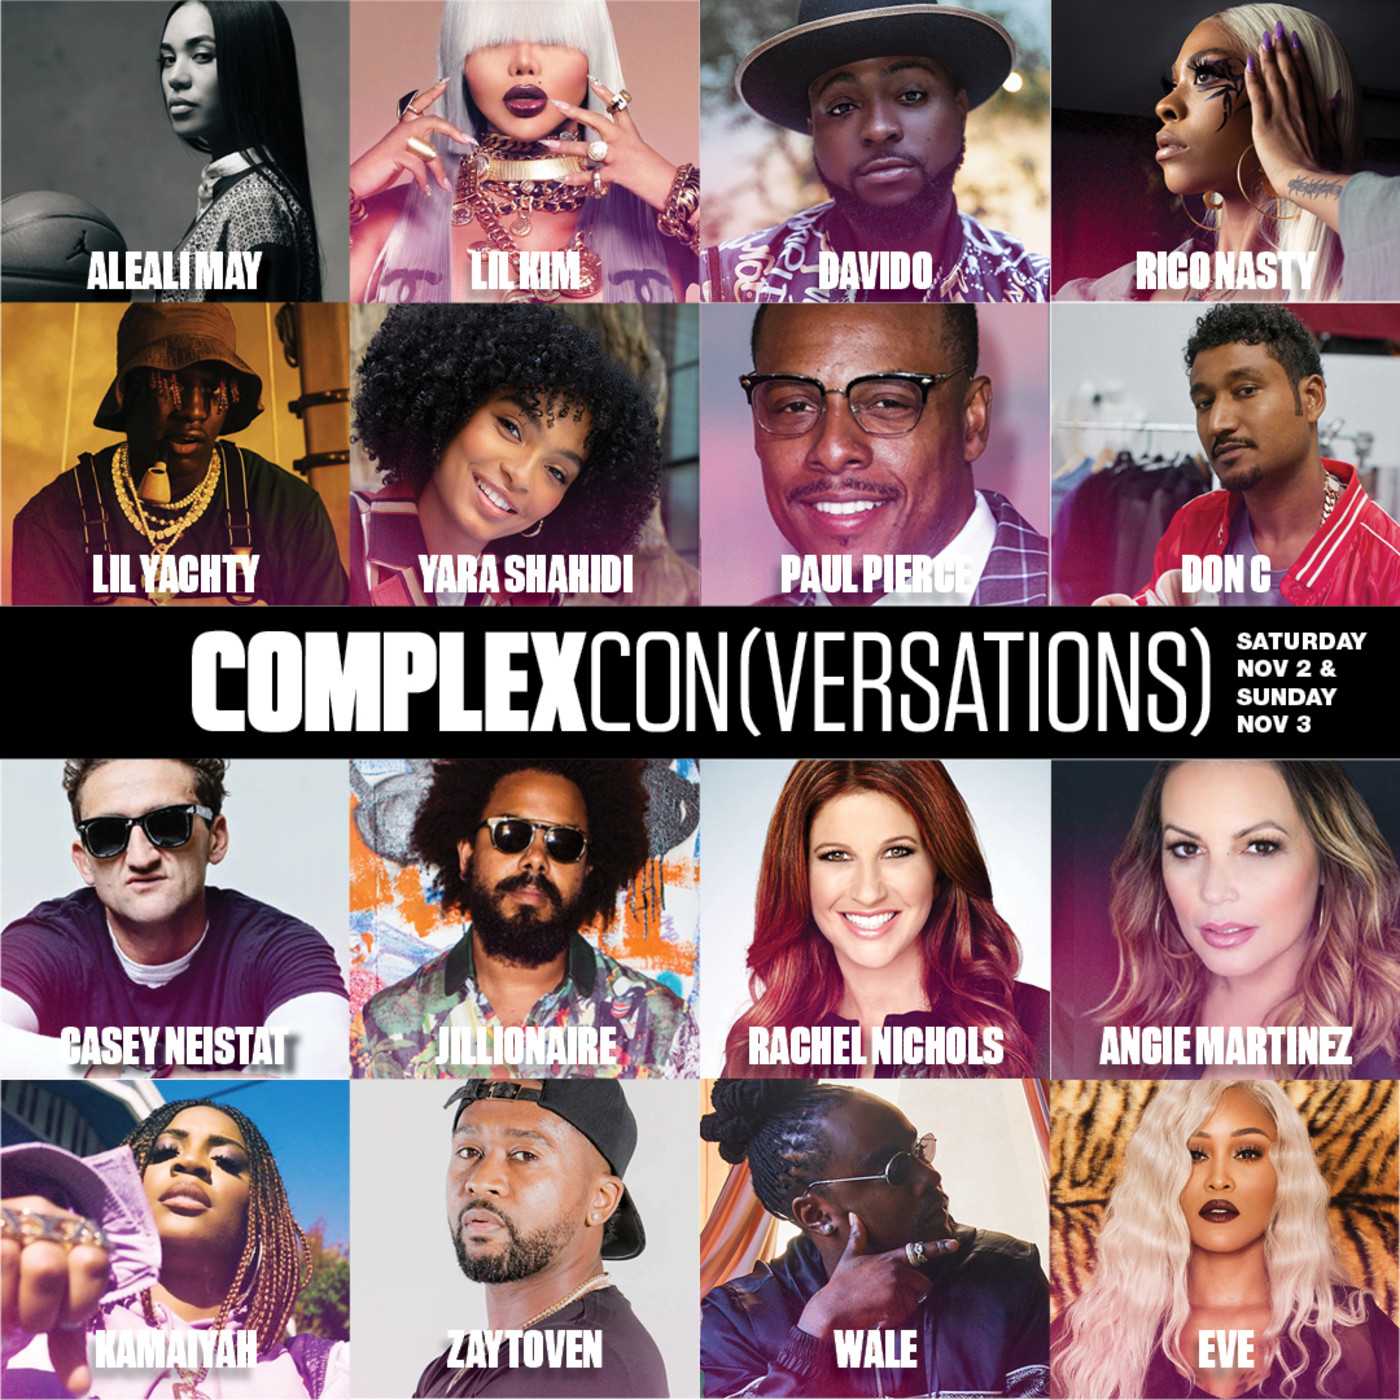 ComplexConversations 2019 Long Beach